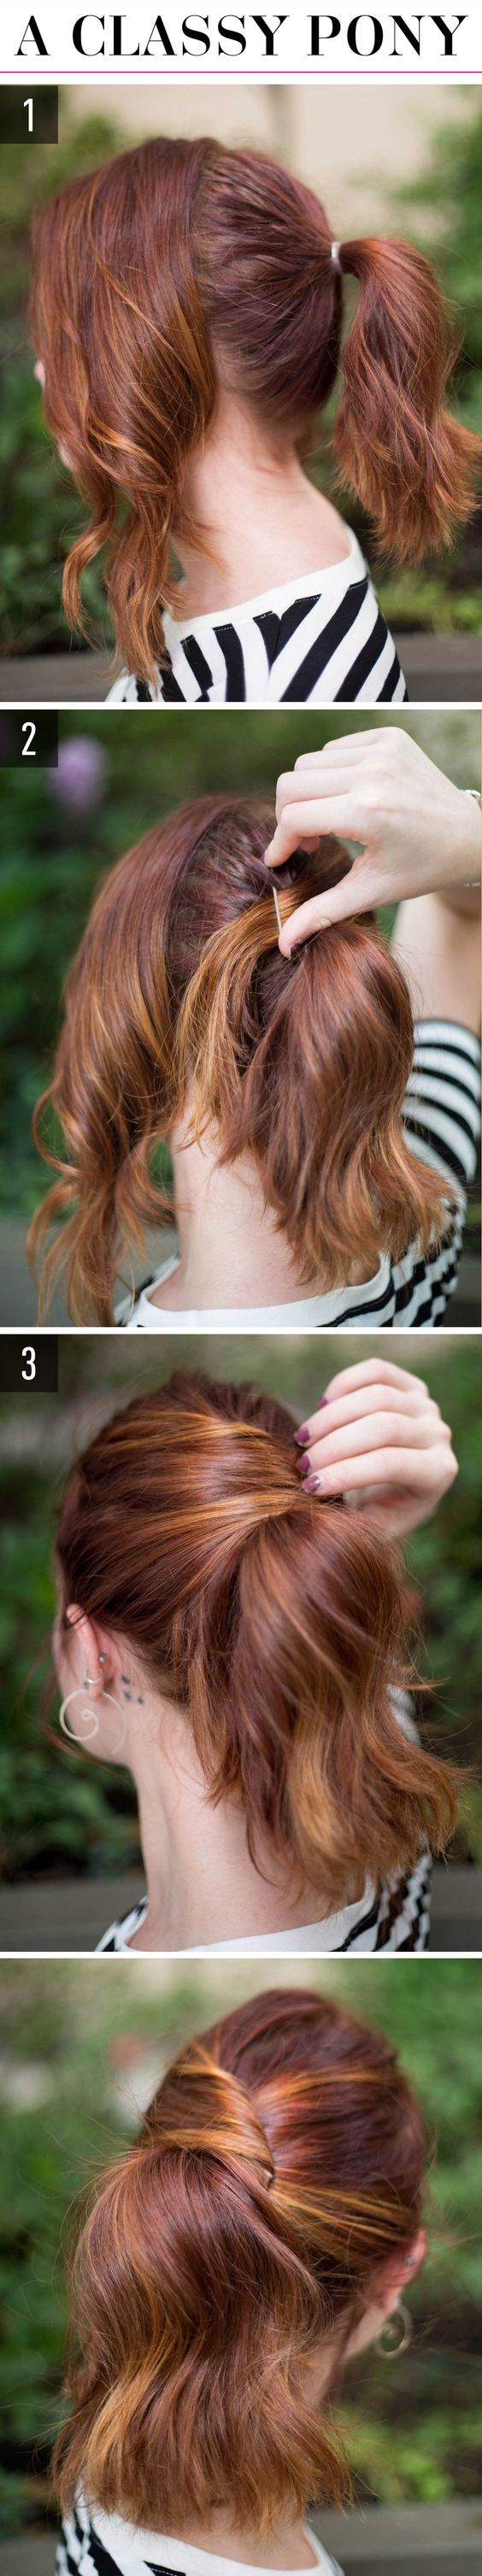 1.Picture 2Separate your hair into two even sections, one in the front and one in the back, and secure the back half into a ponytail. 2.Pull the right half of the front section across the back of your head over your hair tie, and pin it on top of the ponytail to cover the elastic. 3.Pull the front left section across the back of your head, draping it over the ponytail, and pin it securely to your head. Done!